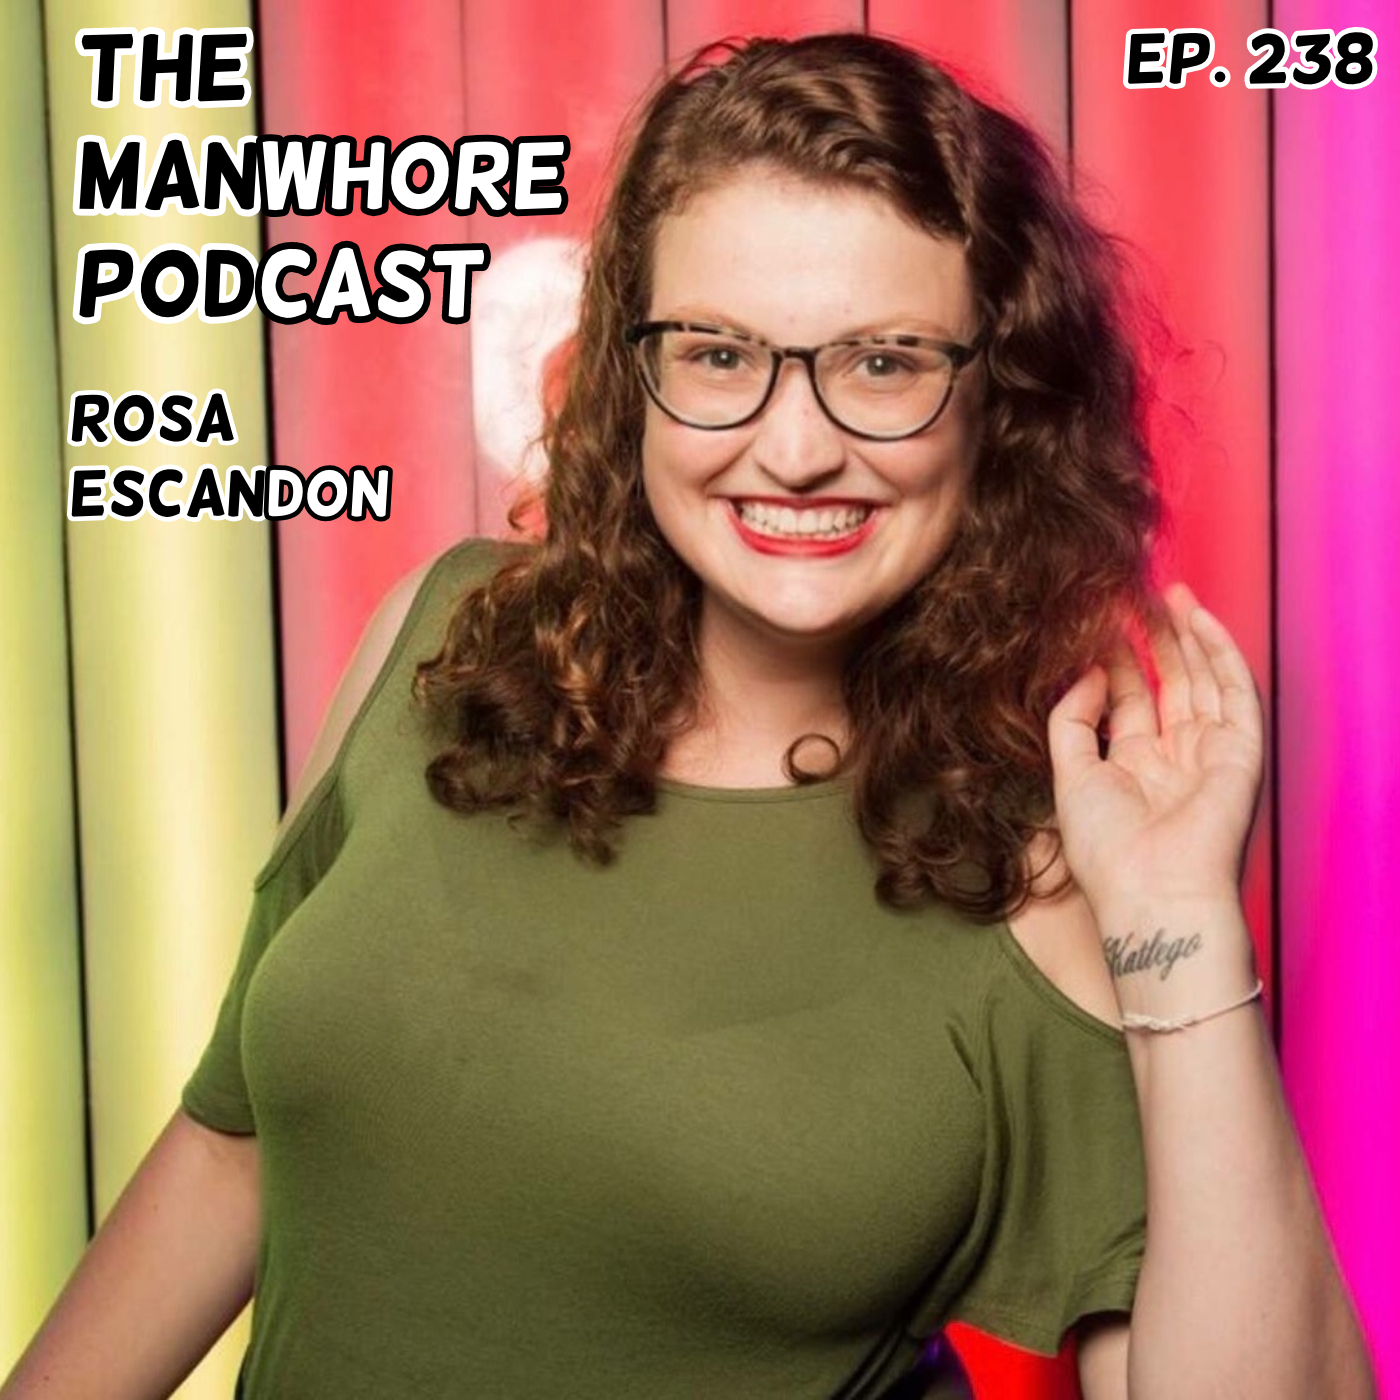 The Manwhore Podcast: A Sex-Positive Quest - Ep. 238: The Bisexual vs. Queer Debate with Rosa Escandon